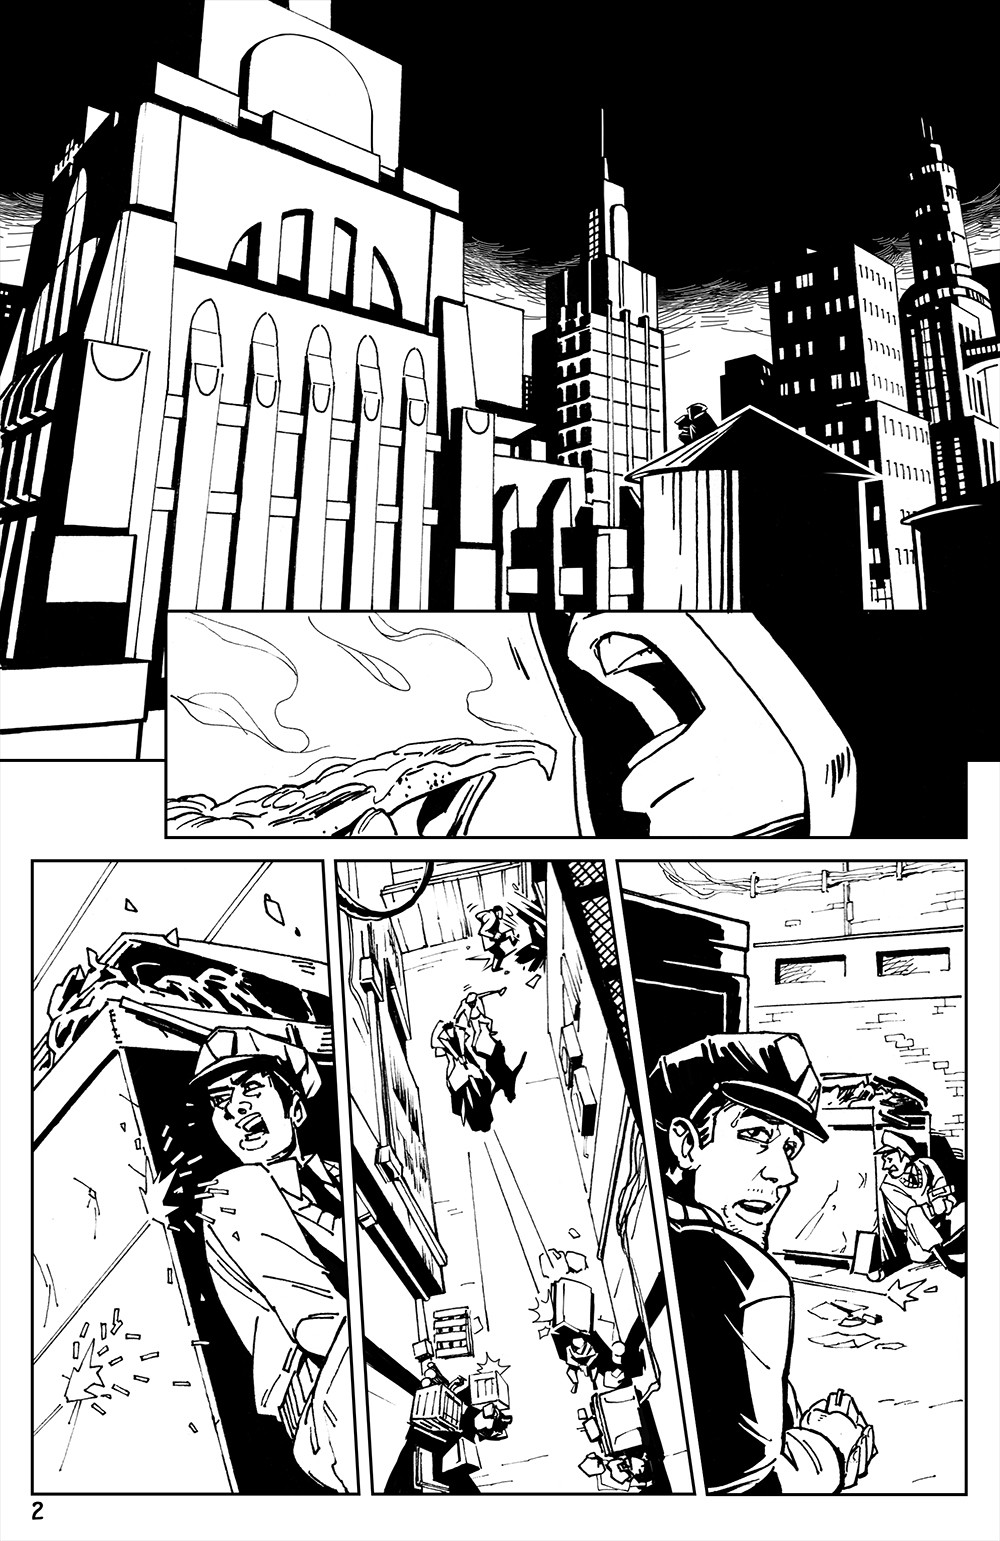 Guillaume poitel page2